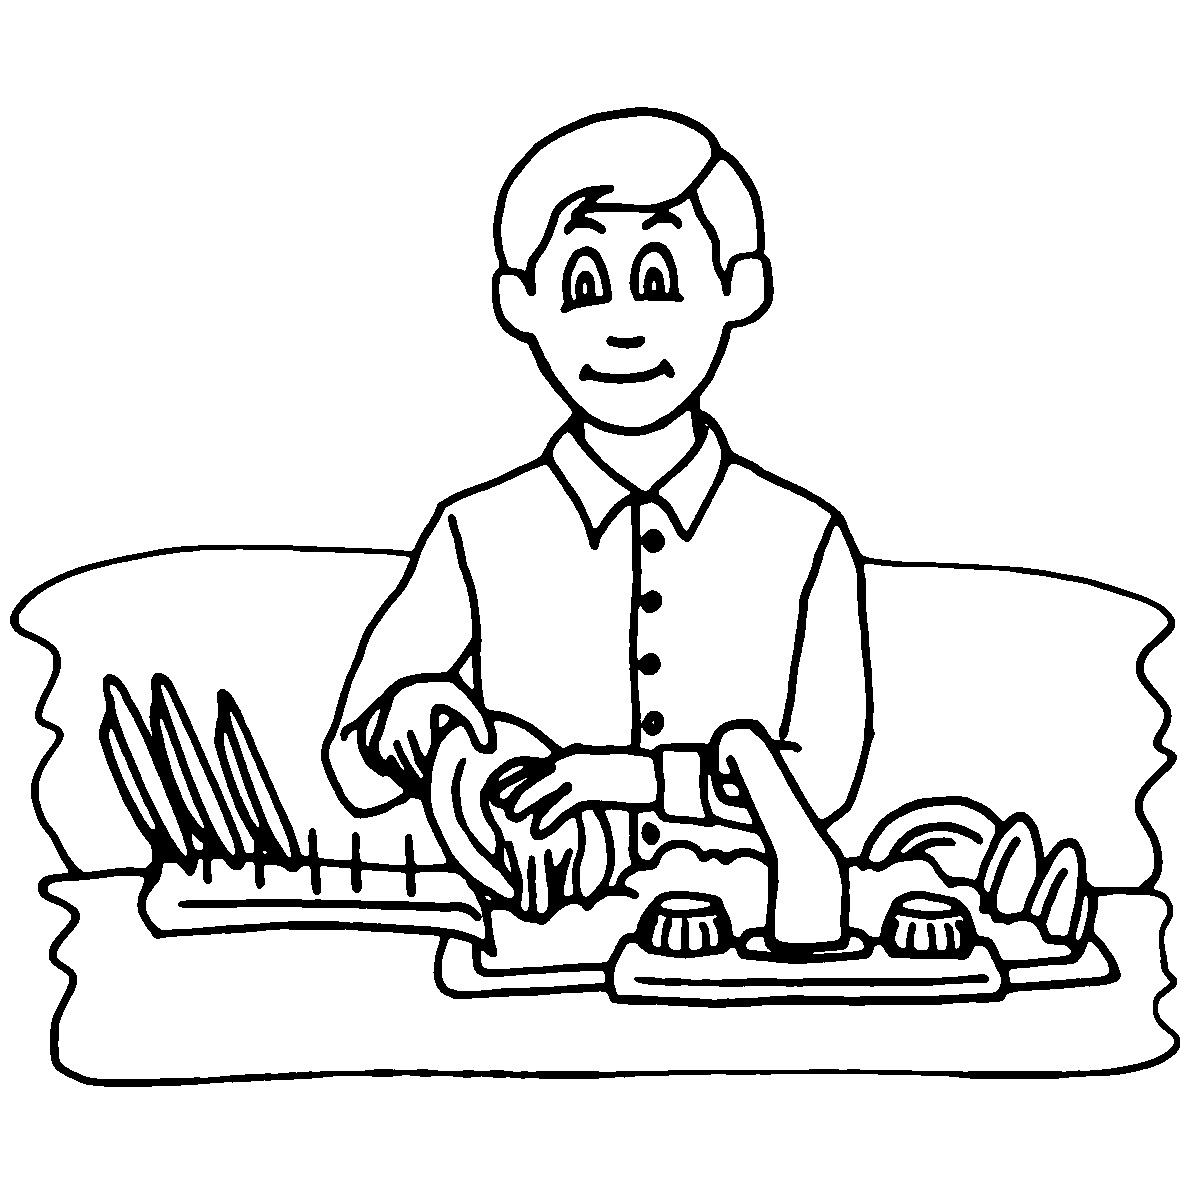 1200x1200 Washing Dishes Black And White Clipart